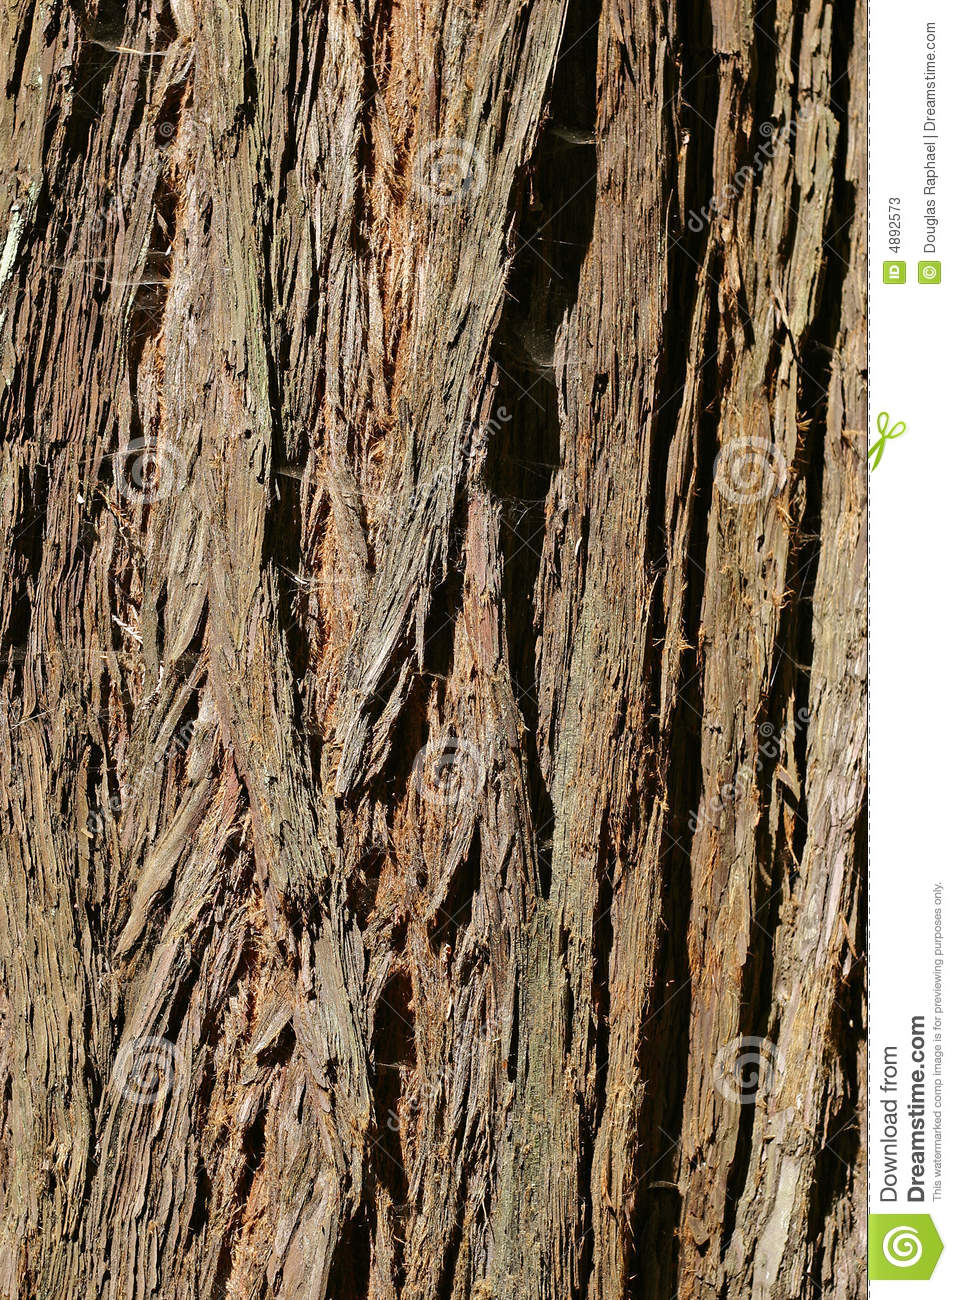 Coast Redwood Tree Bark From Muir Woods Sequoia Sempervirens